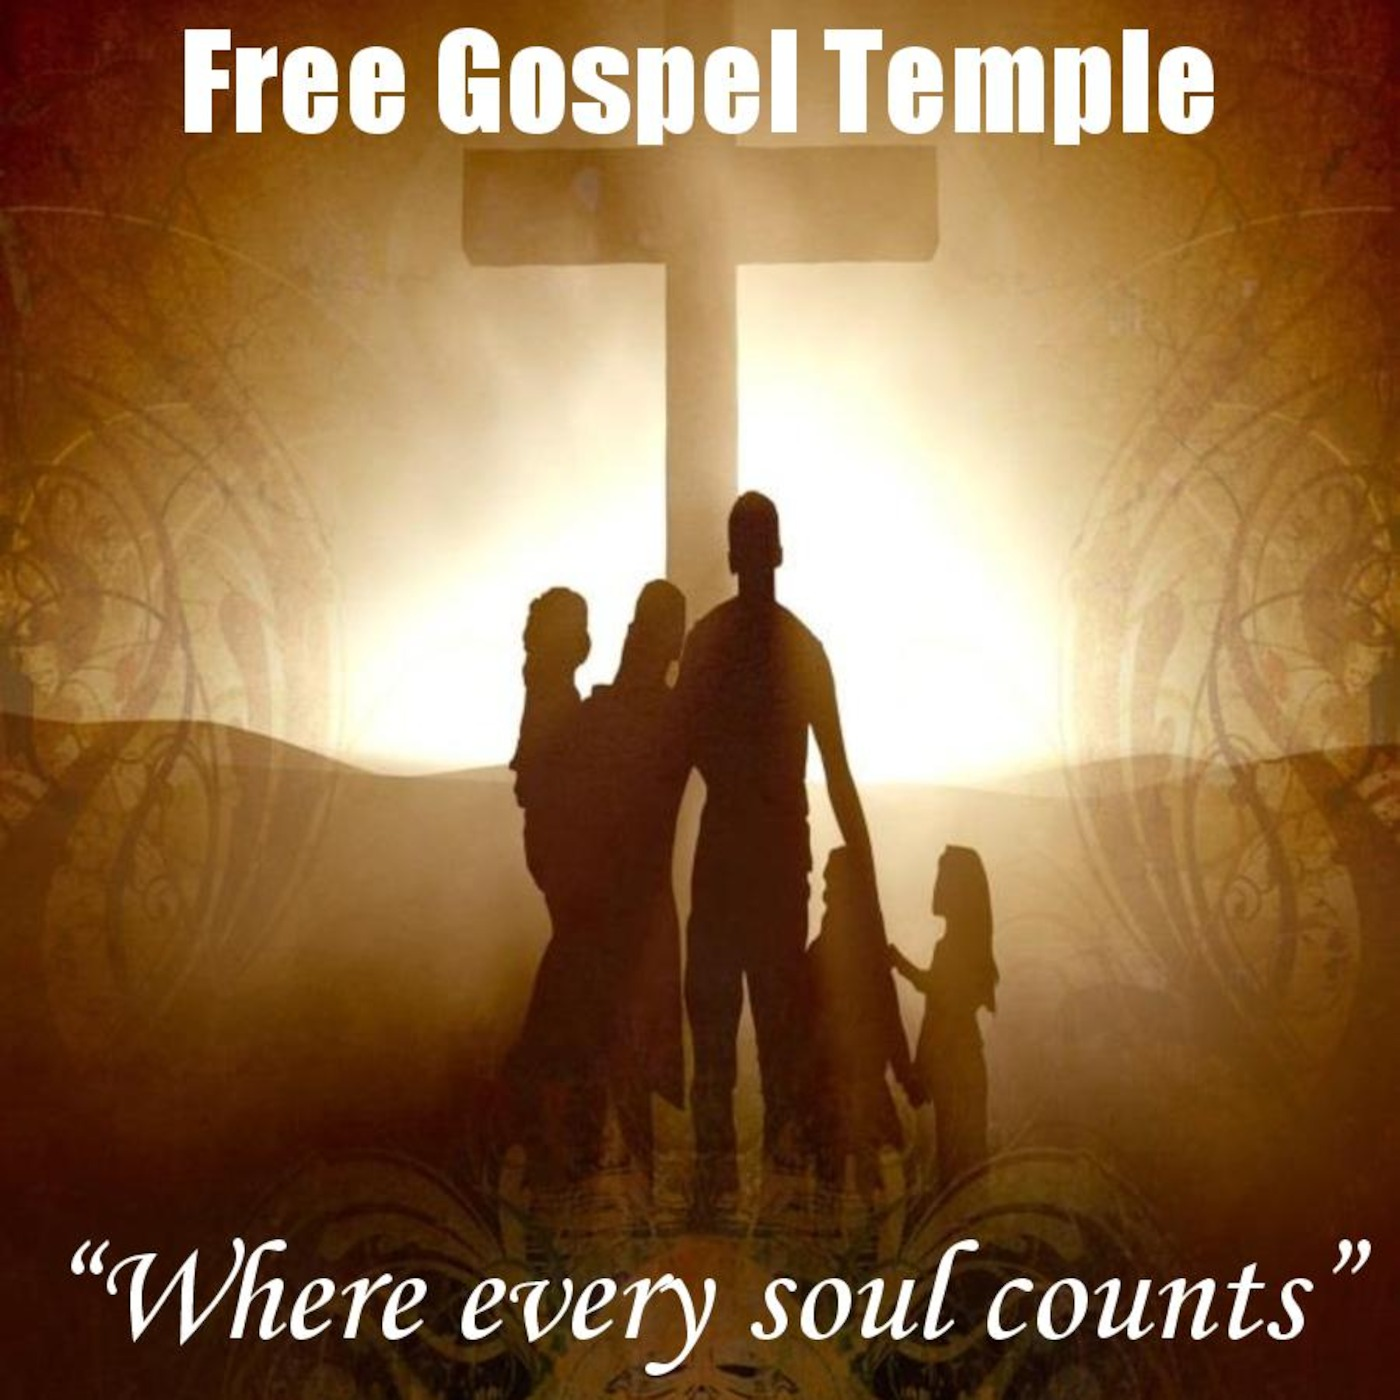 Free Gospel Temple's Podcast